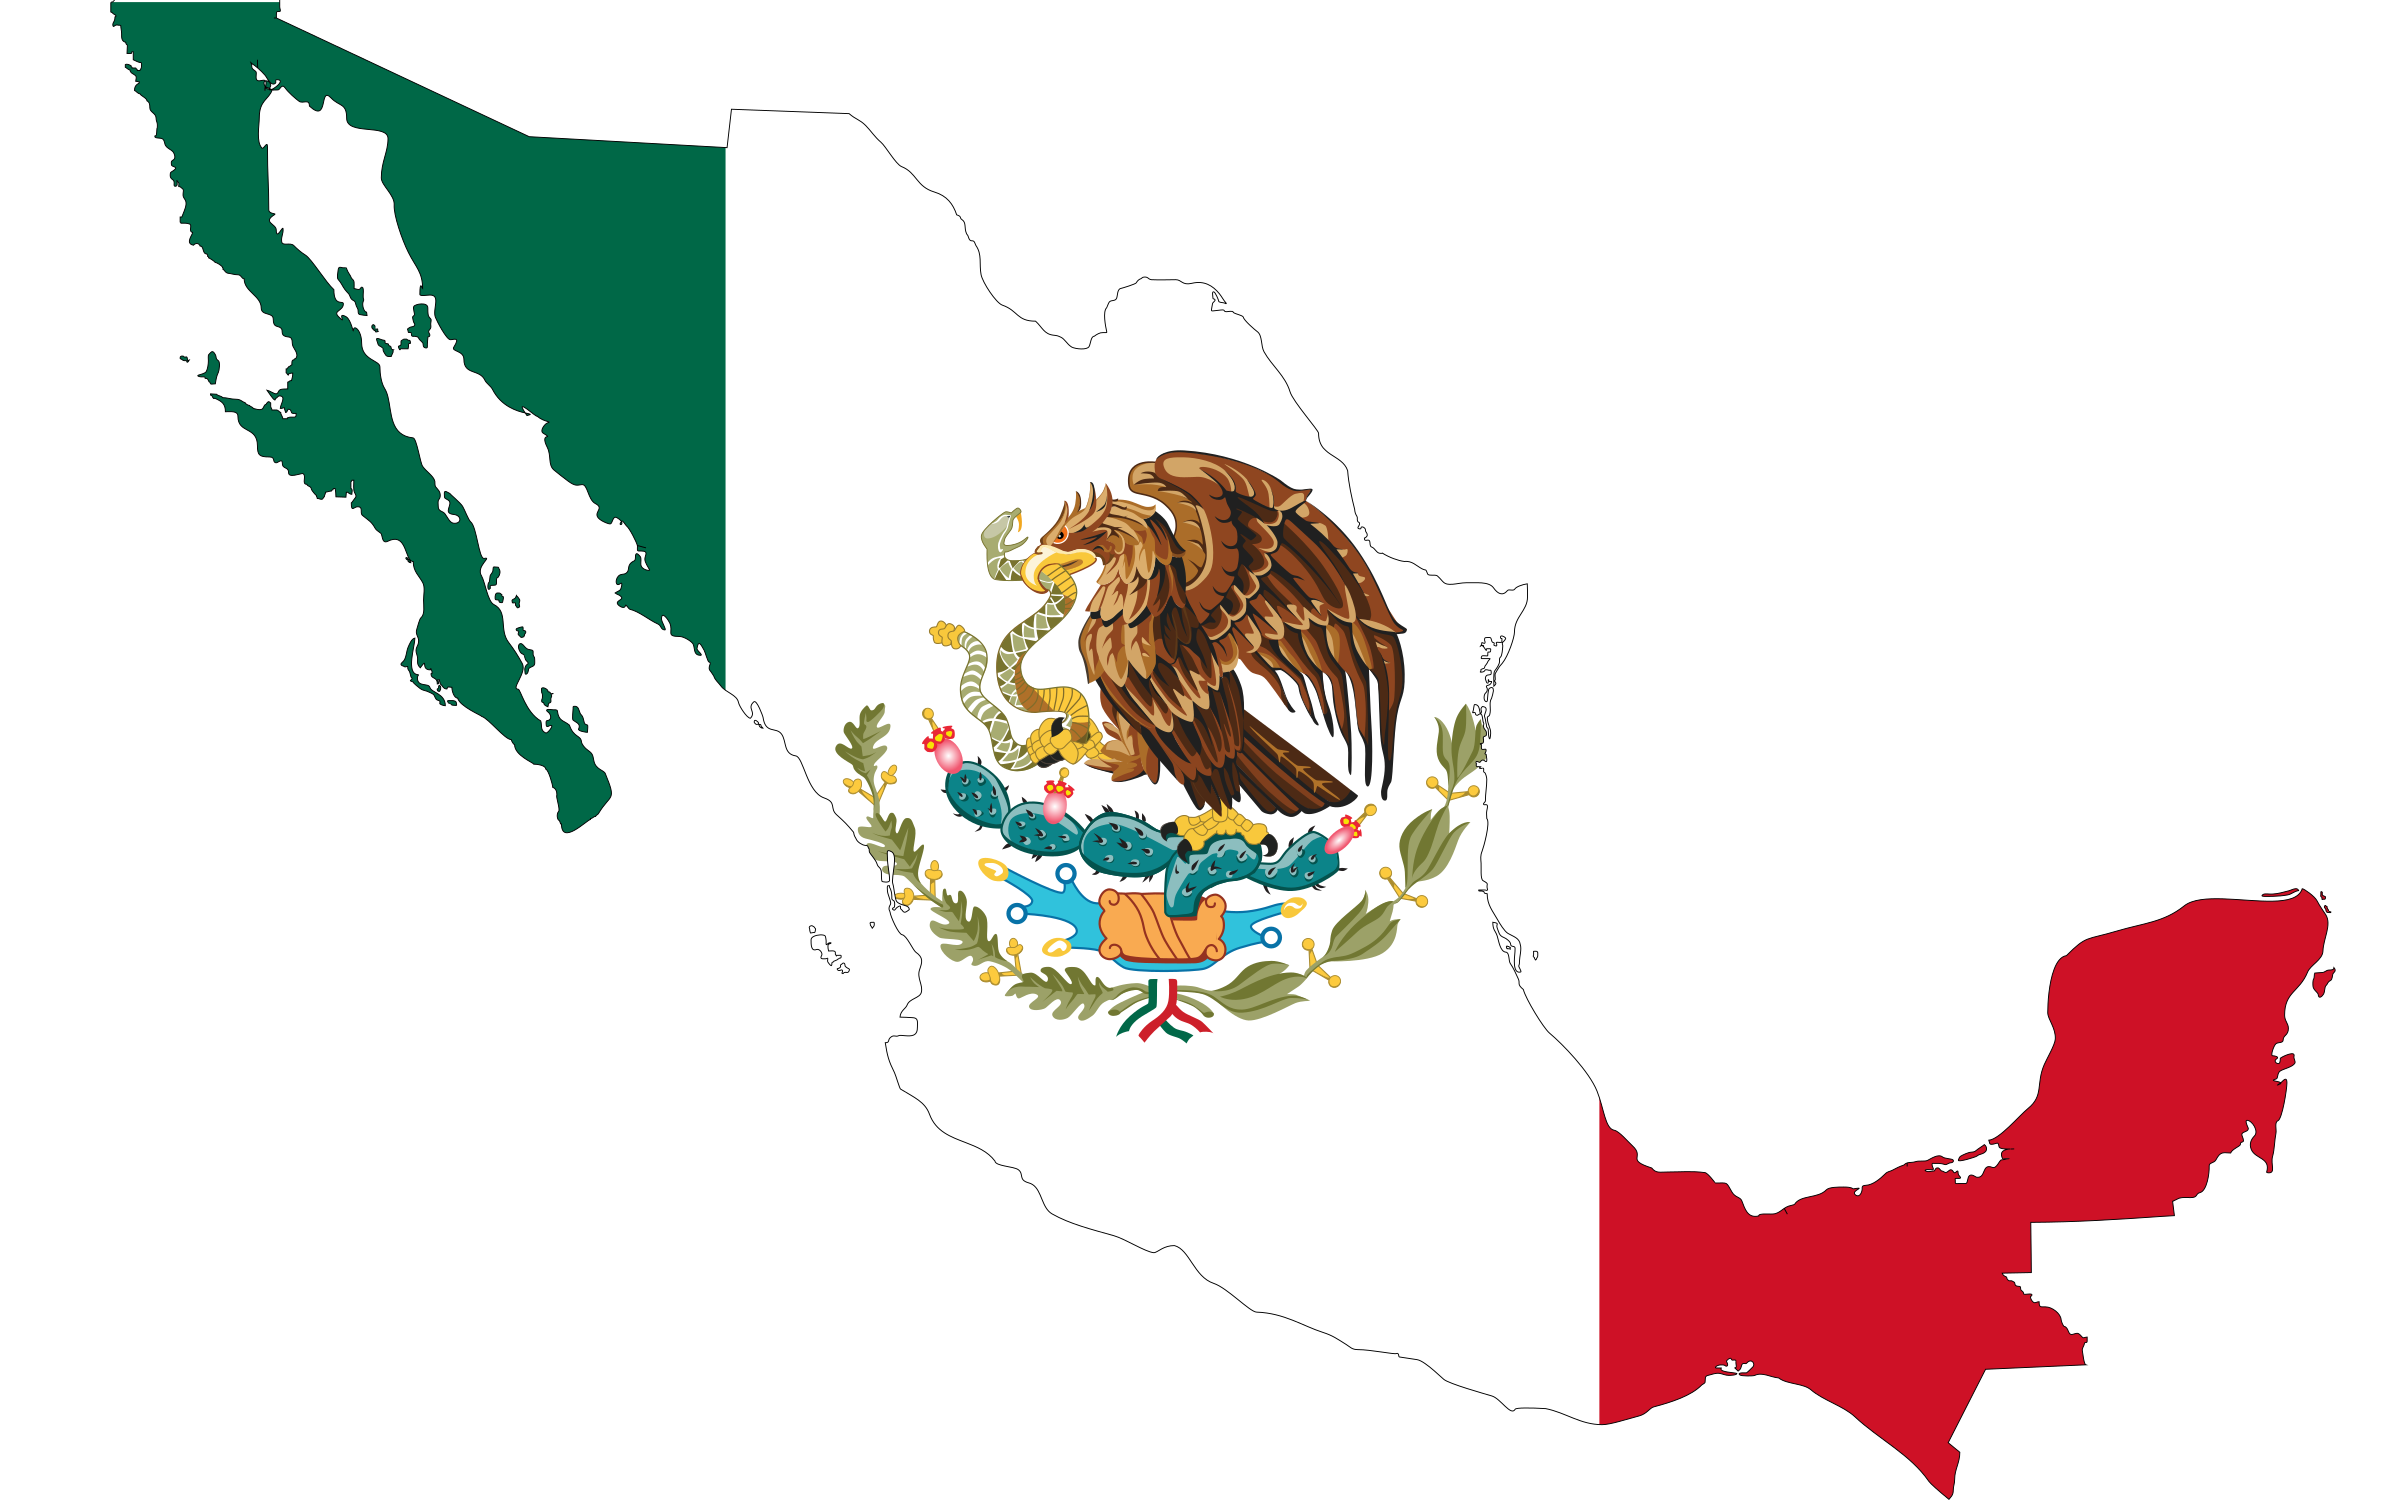 Flag big image png. Mexico clipart map